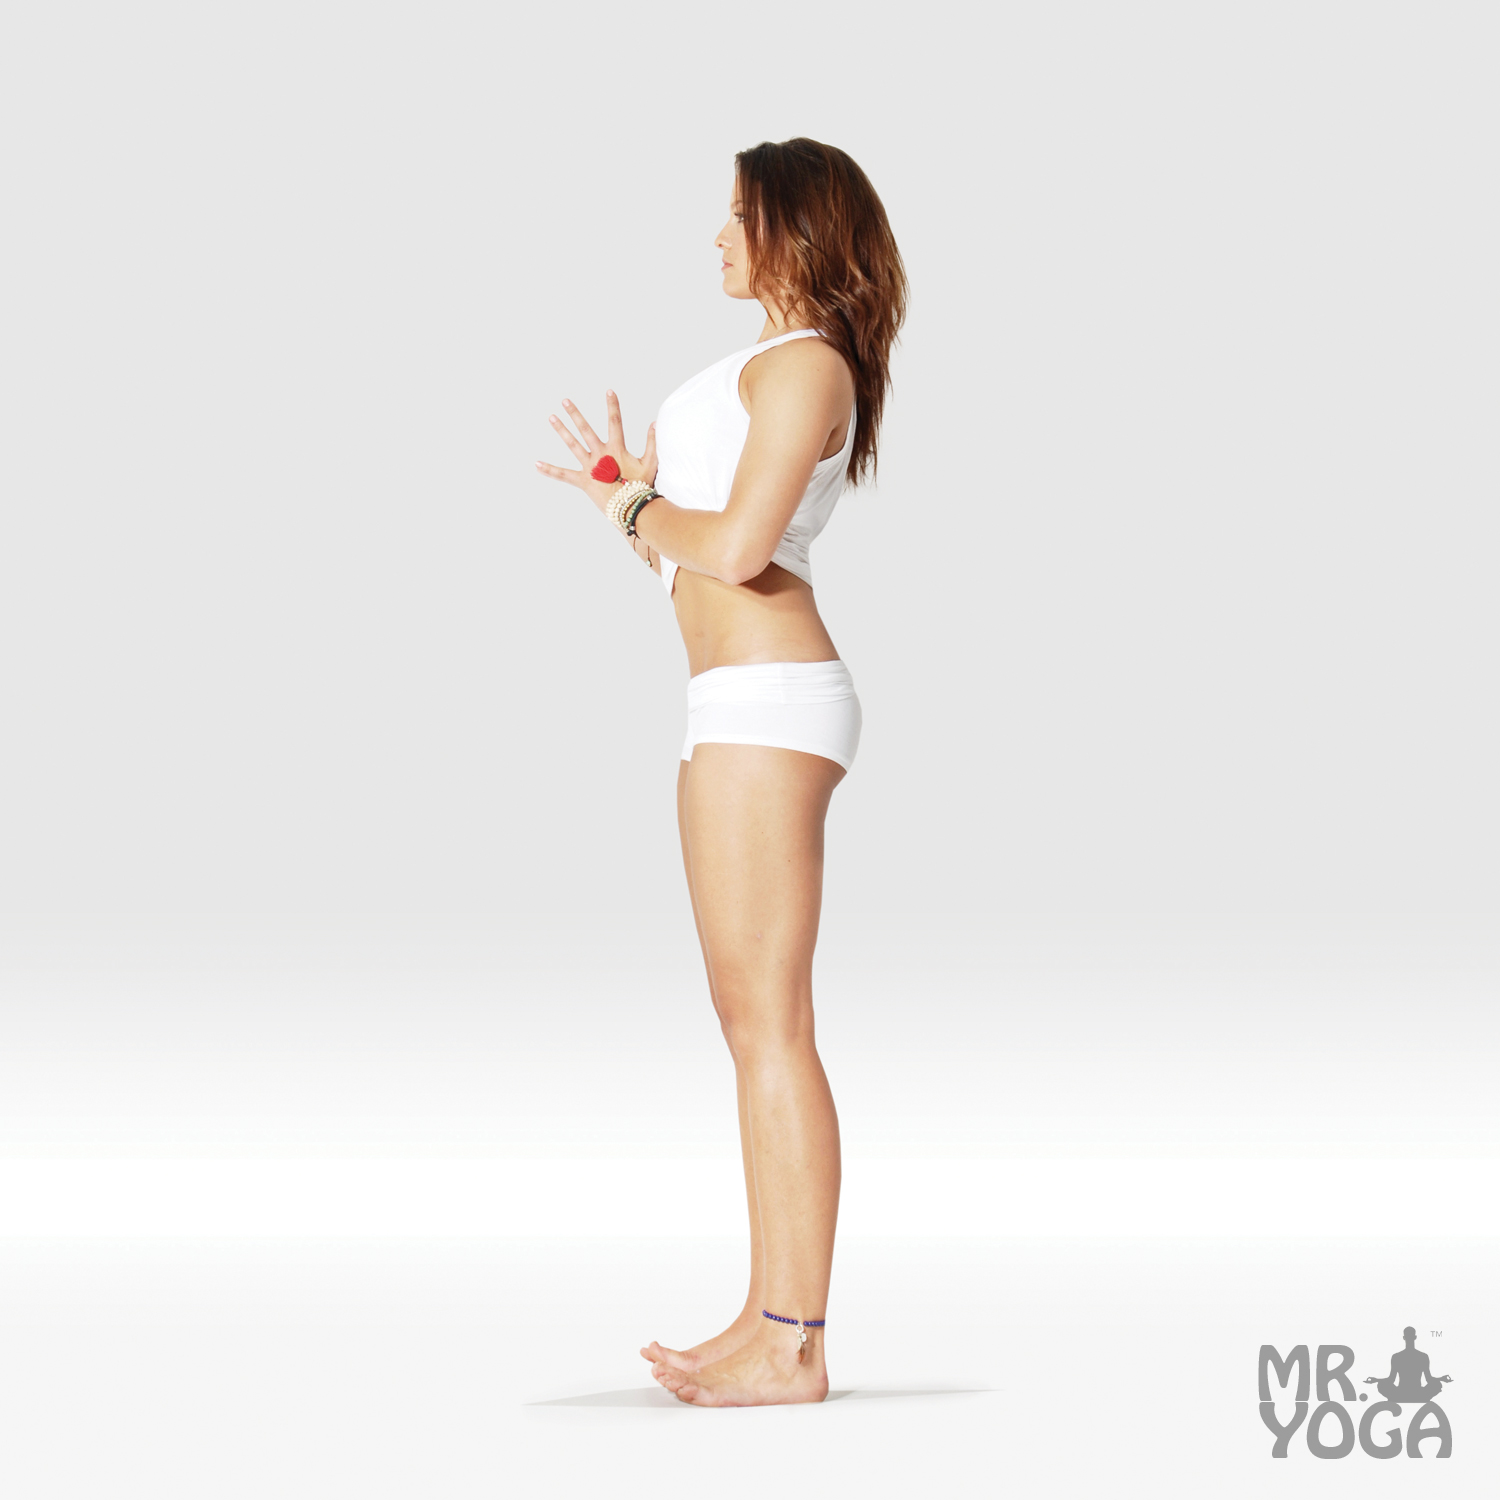 Mountain Pose - Hands in Prayer Pose • Mr. Yoga ® Is Your #40